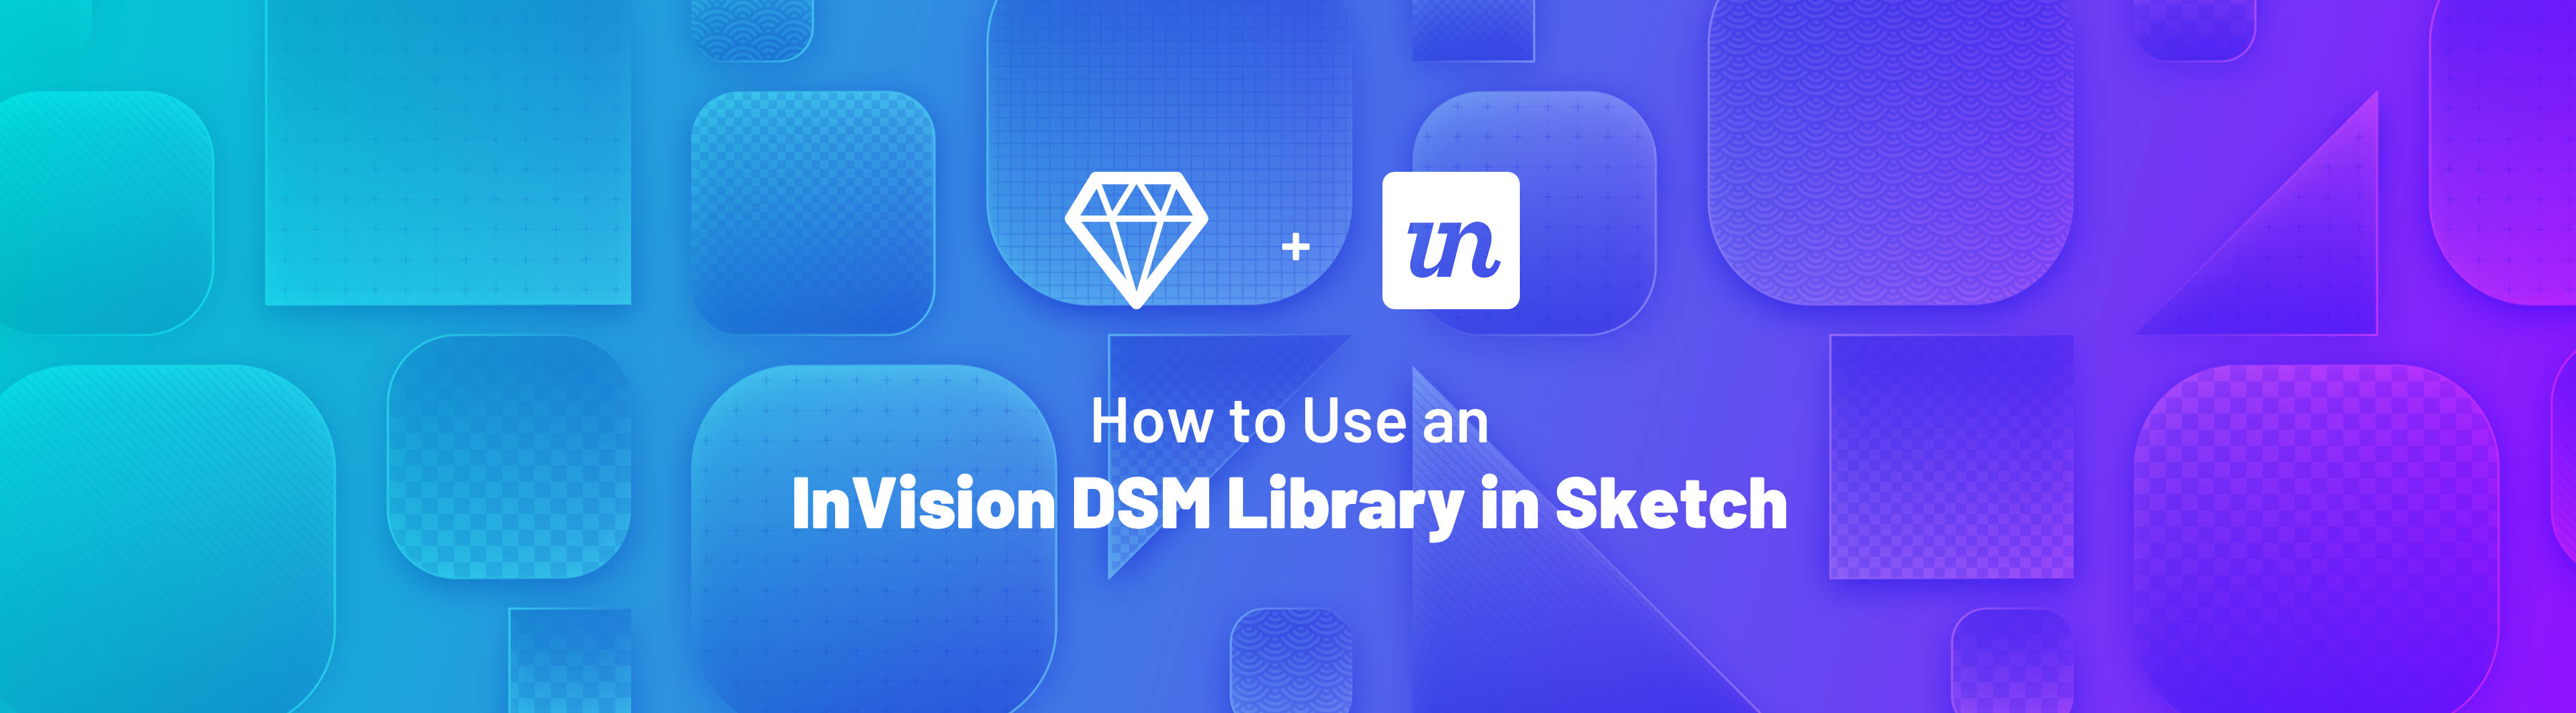 How to Use an InVision DSM Library in Sketch - UX Power Tools - Medium